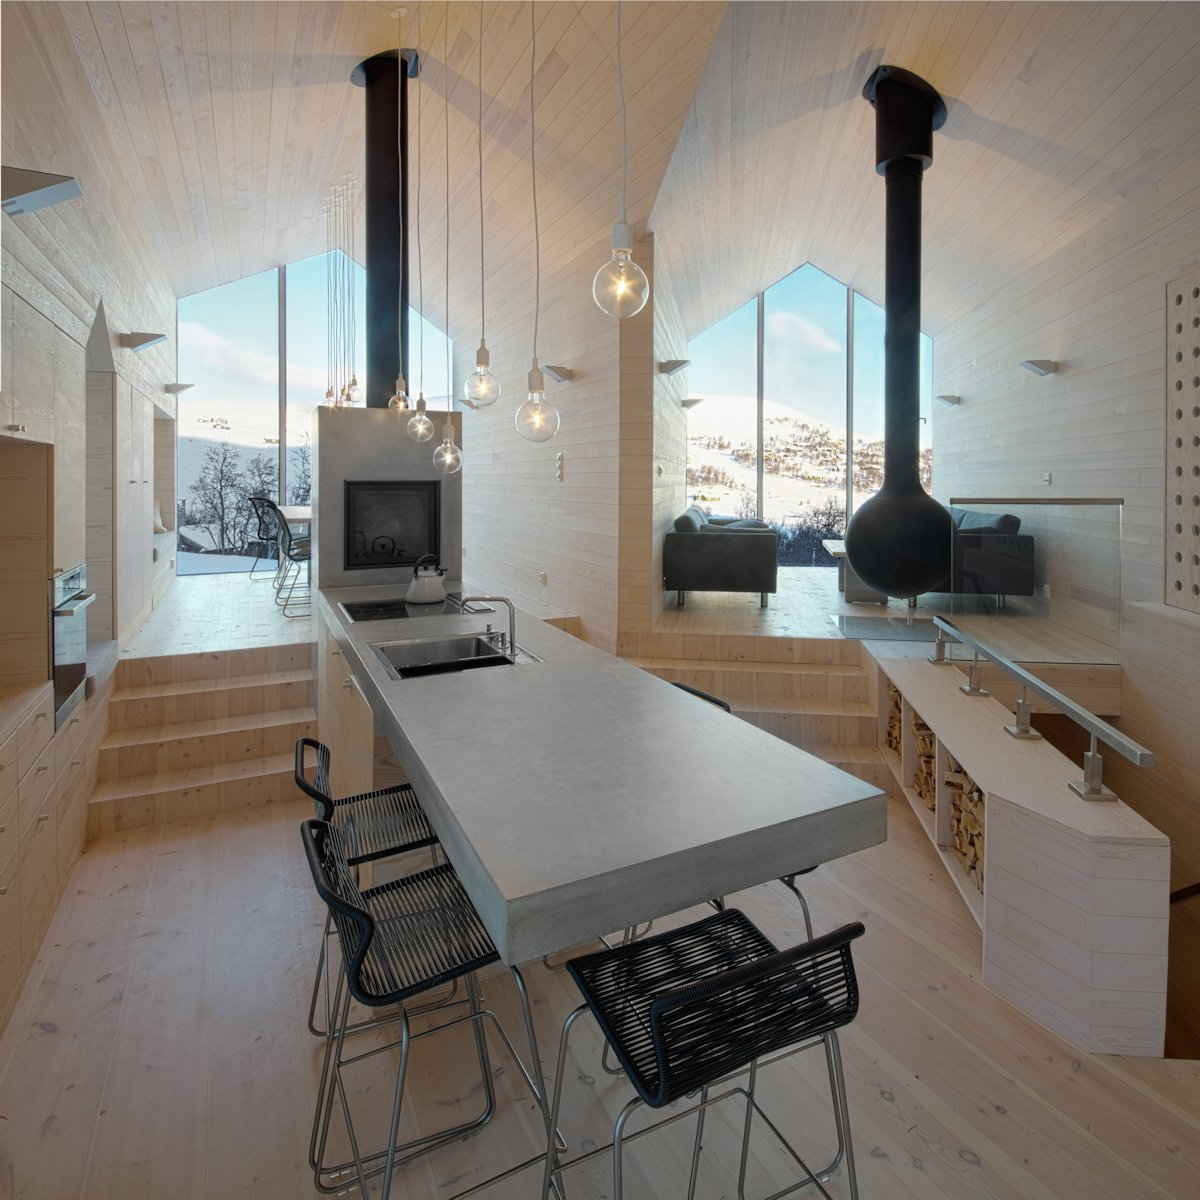 Kitchen, Breakfast Bar, Lighting, Living Space, Holiday Lodge in Havsdalen, Norway